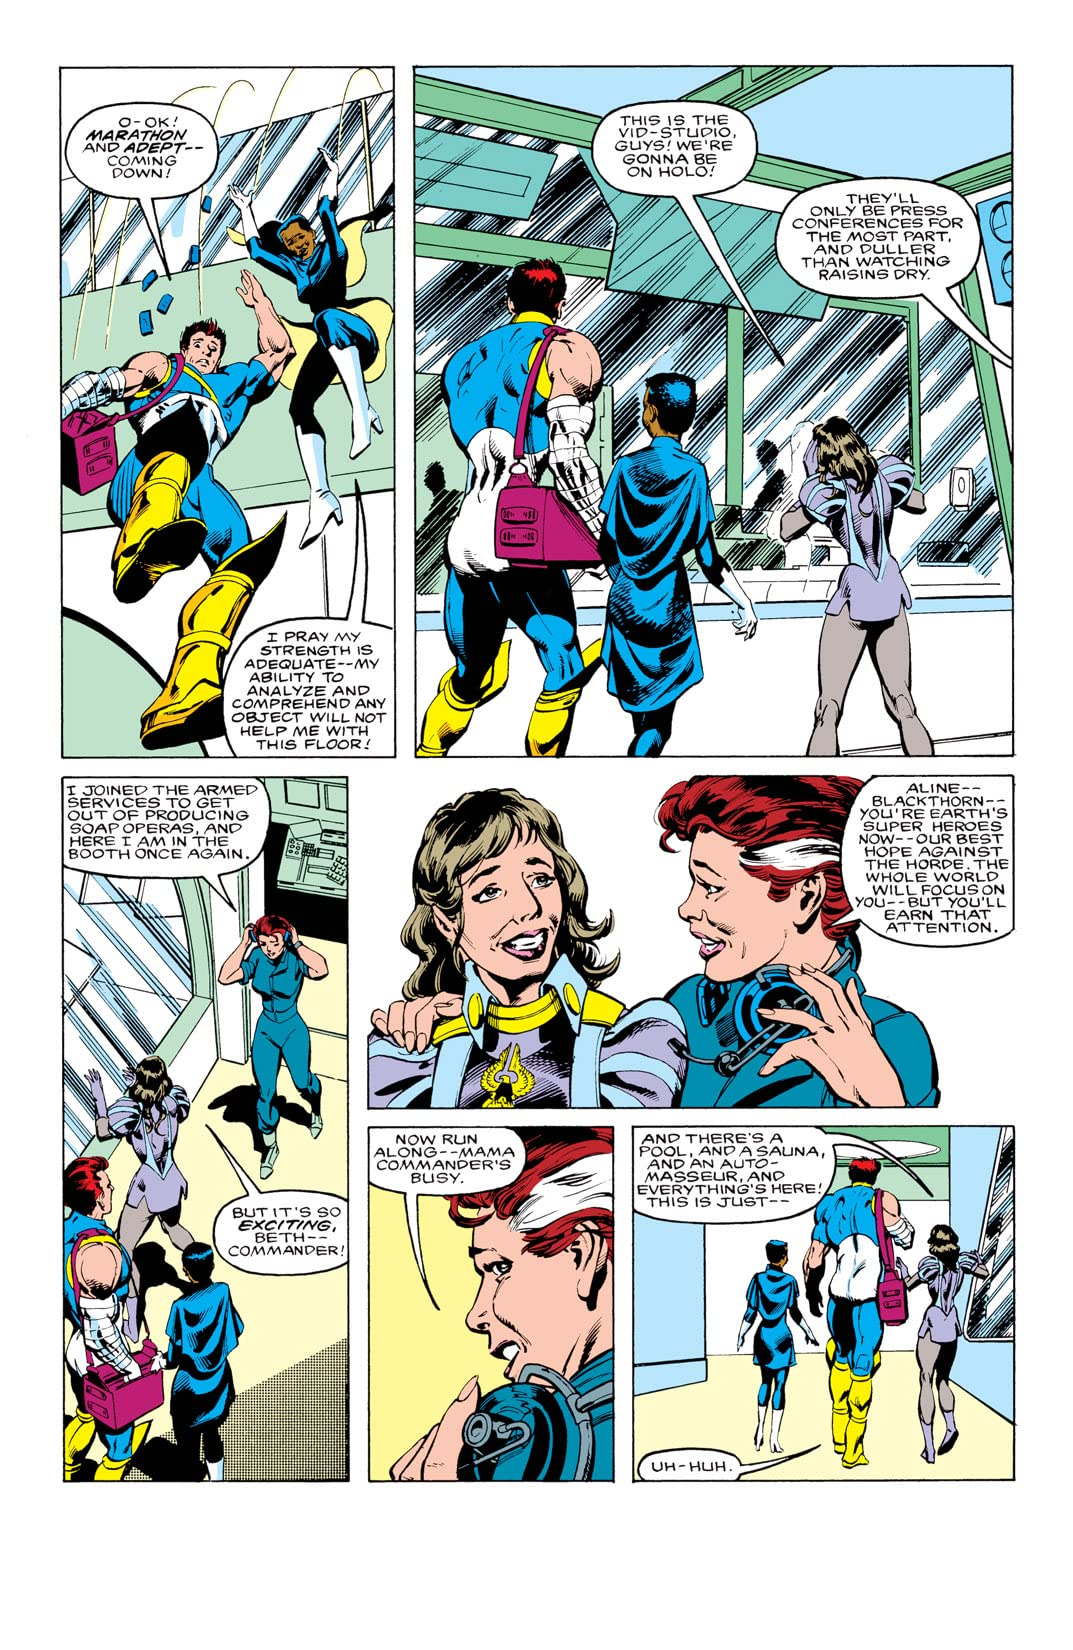 Strikeforce: Morituri #3